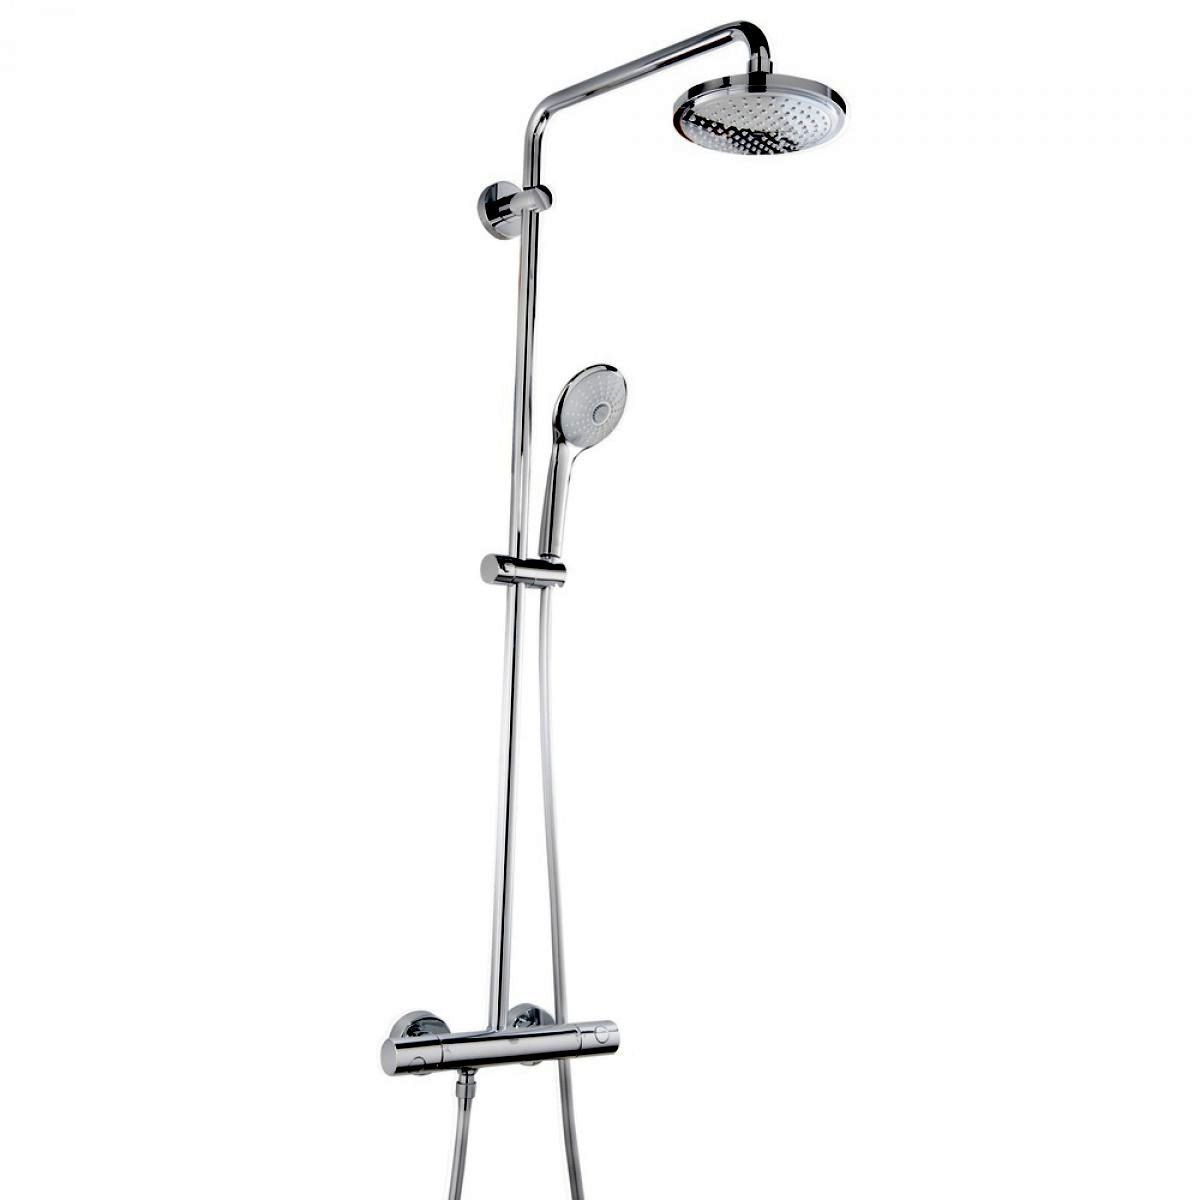 grohe euphoria 180 thermostatic shower system uk bathrooms. Black Bedroom Furniture Sets. Home Design Ideas